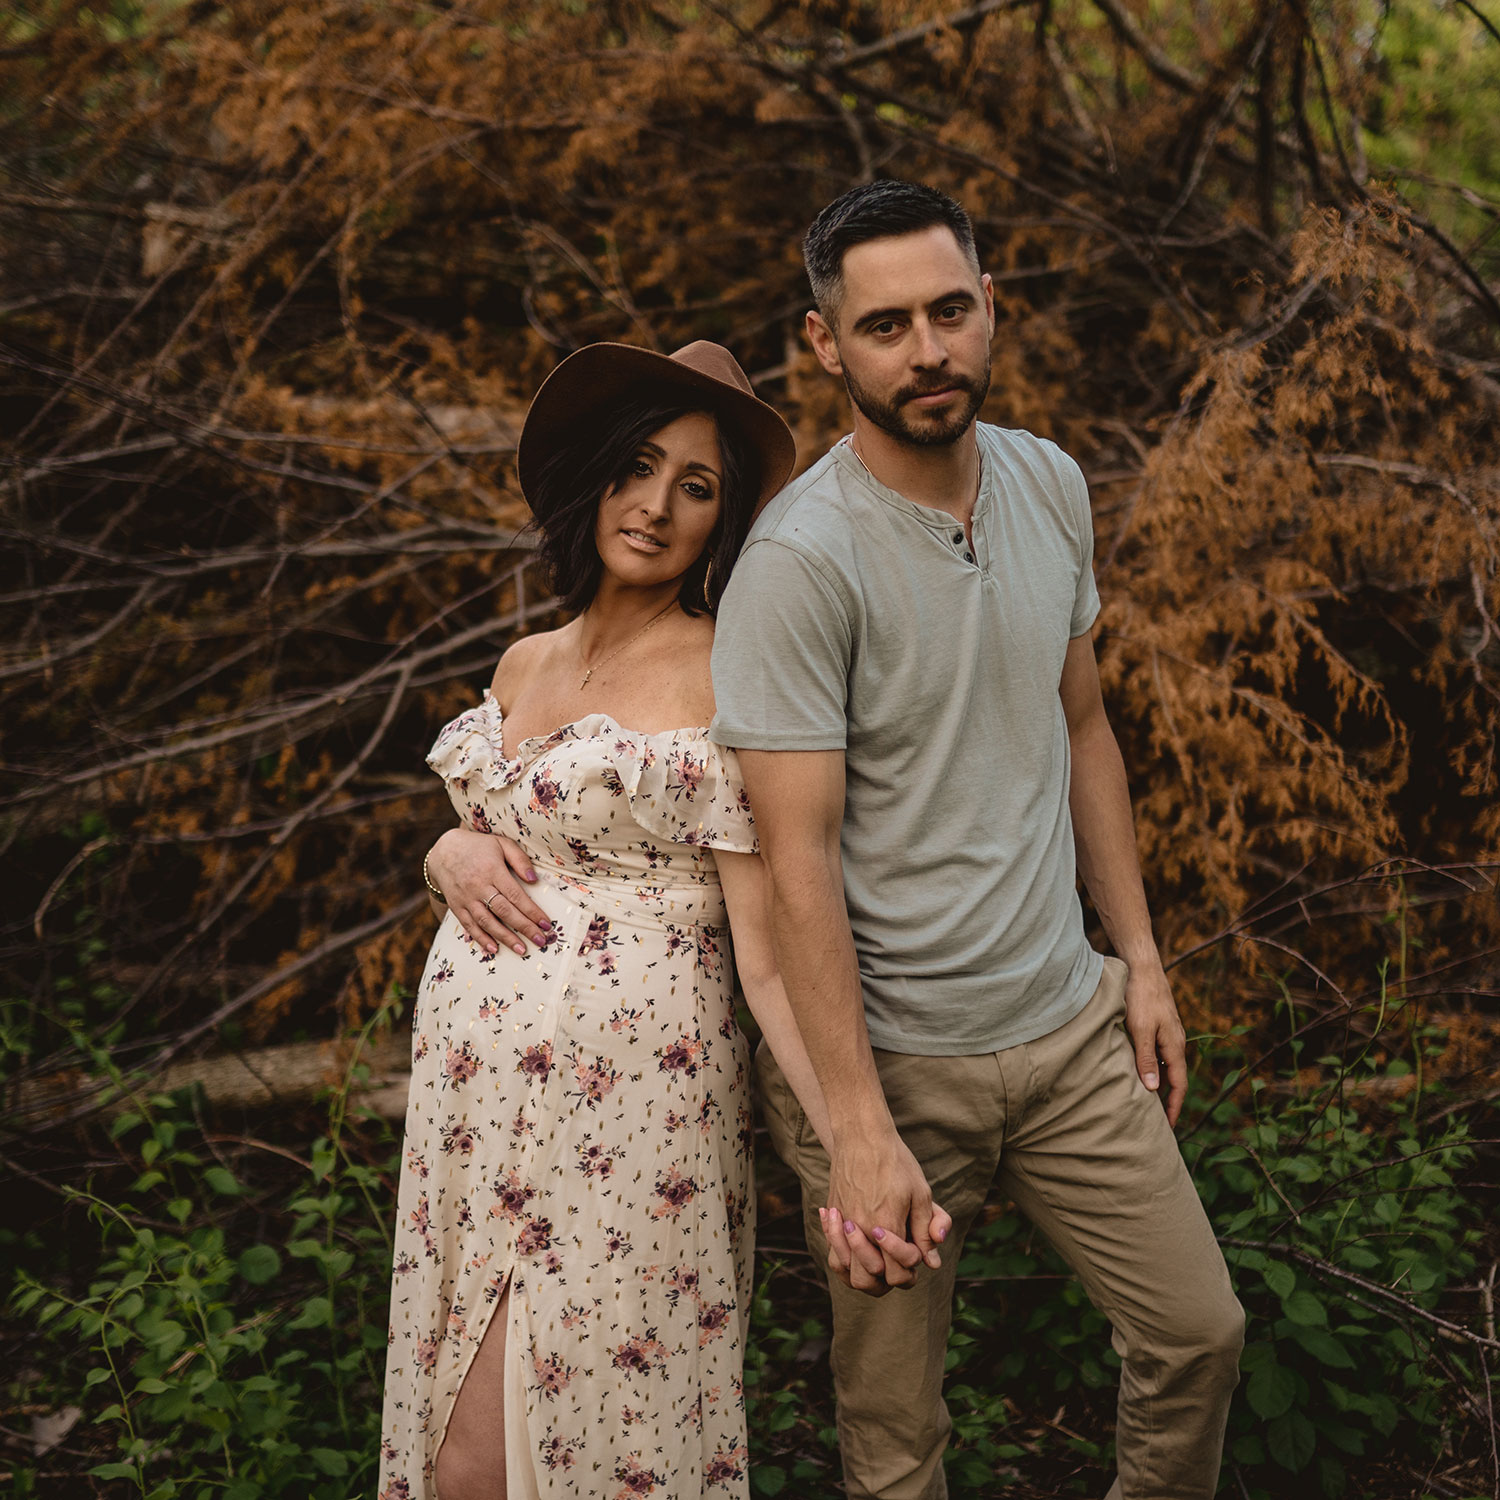 pregnant-wife-and-husband-standing-back-to-back-holding-hands-looking-at-camera-maternity-desmoines-iowa-raelyn-ramey-photography.jpg